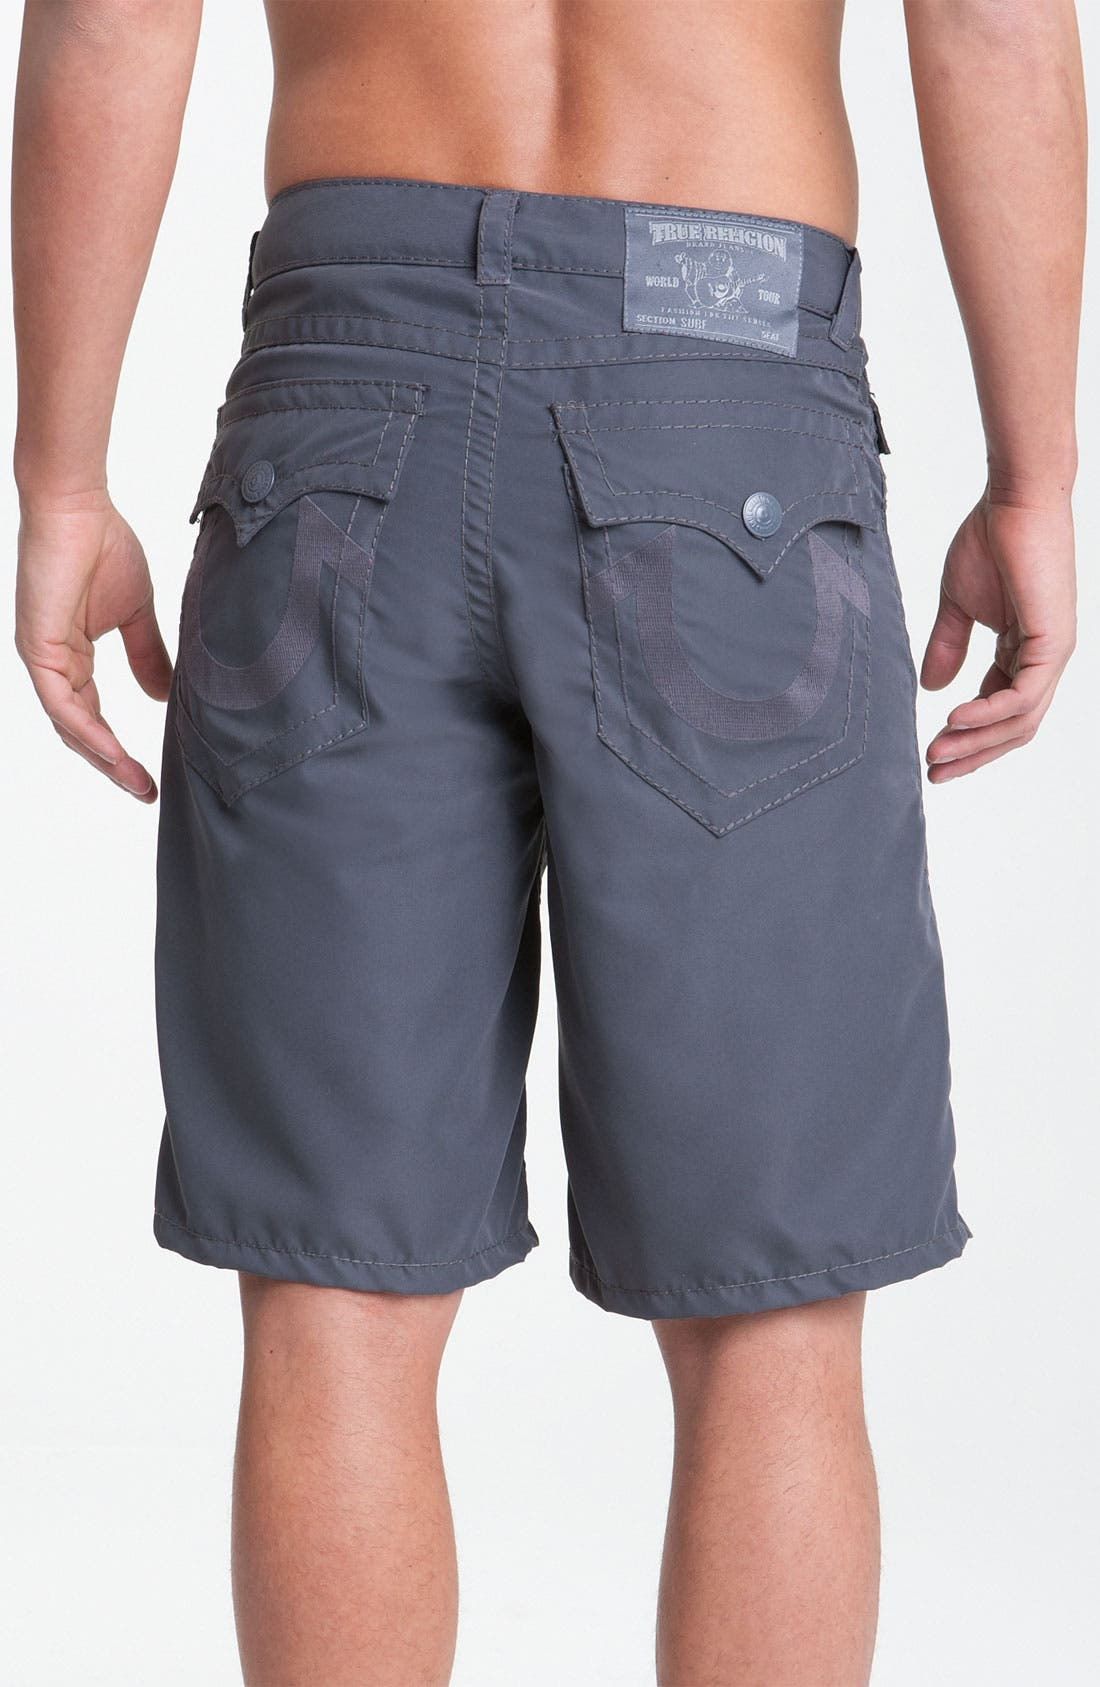 'PCH' Board Shorts,                         Main,                         color, Charcoal